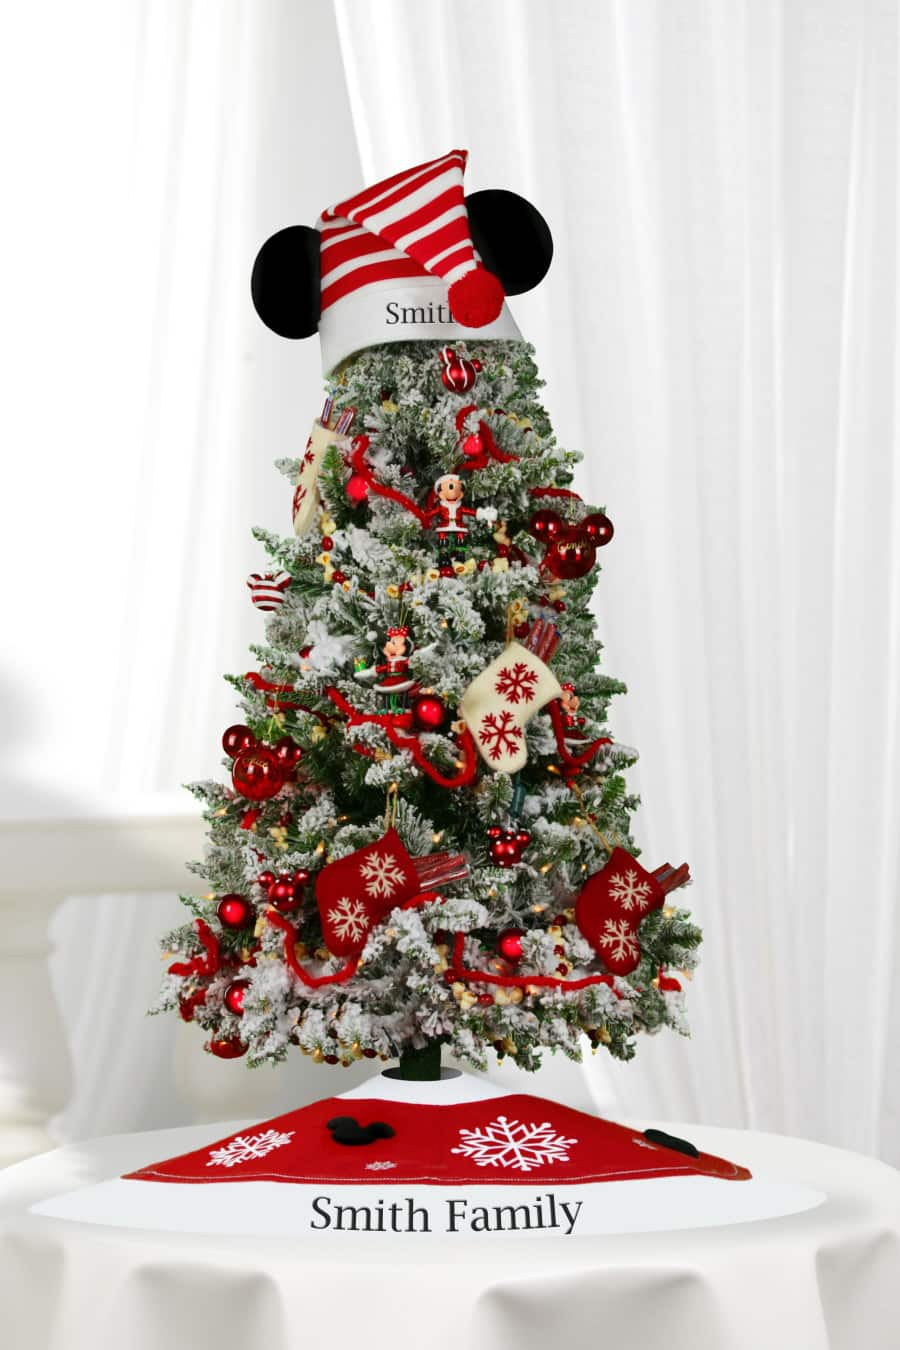 mickeys very merry christmas tree from disney floral gifts - Disney Christmas Tree